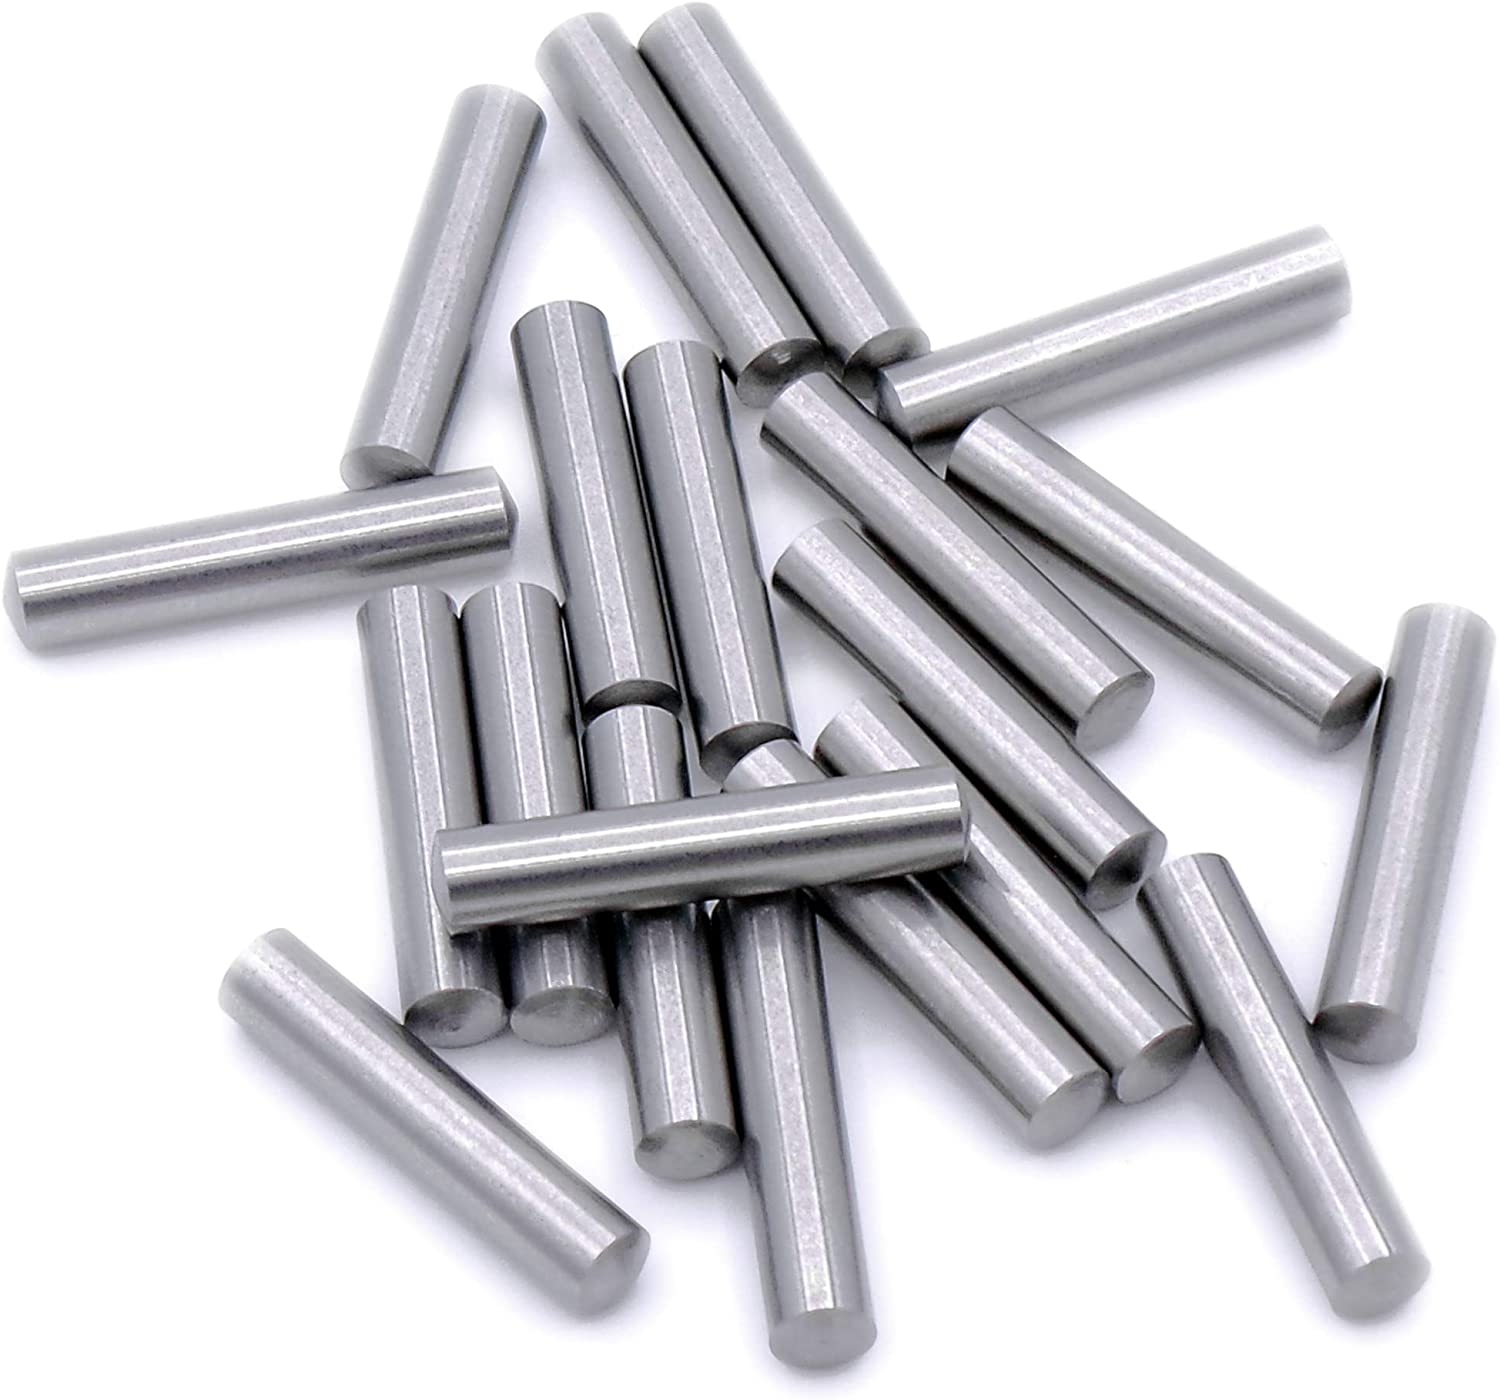 8mm Metric Solid Dowel Pin Rod Position Pins A2 304 Stainless Steel M8